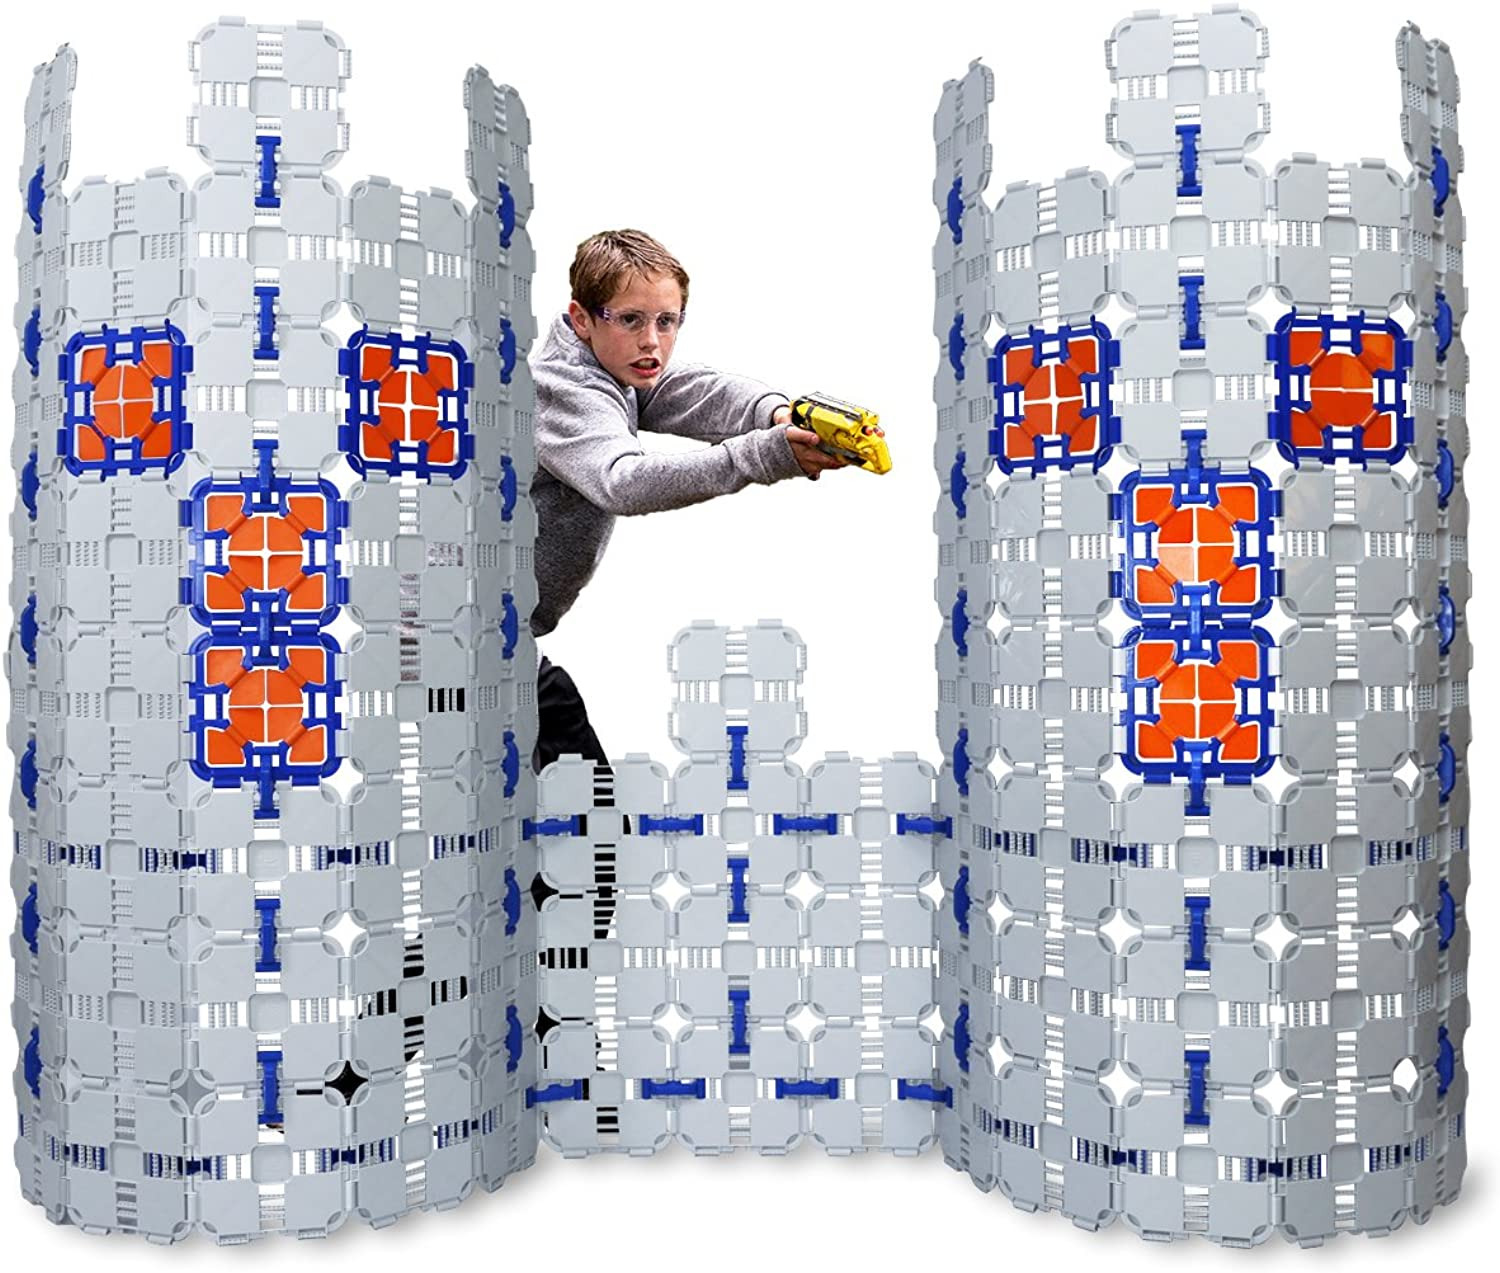 Blaster Boards  4 Pack   Kids Fort Building Kit for Nerf Wars & Creative Play   184 Piece Set